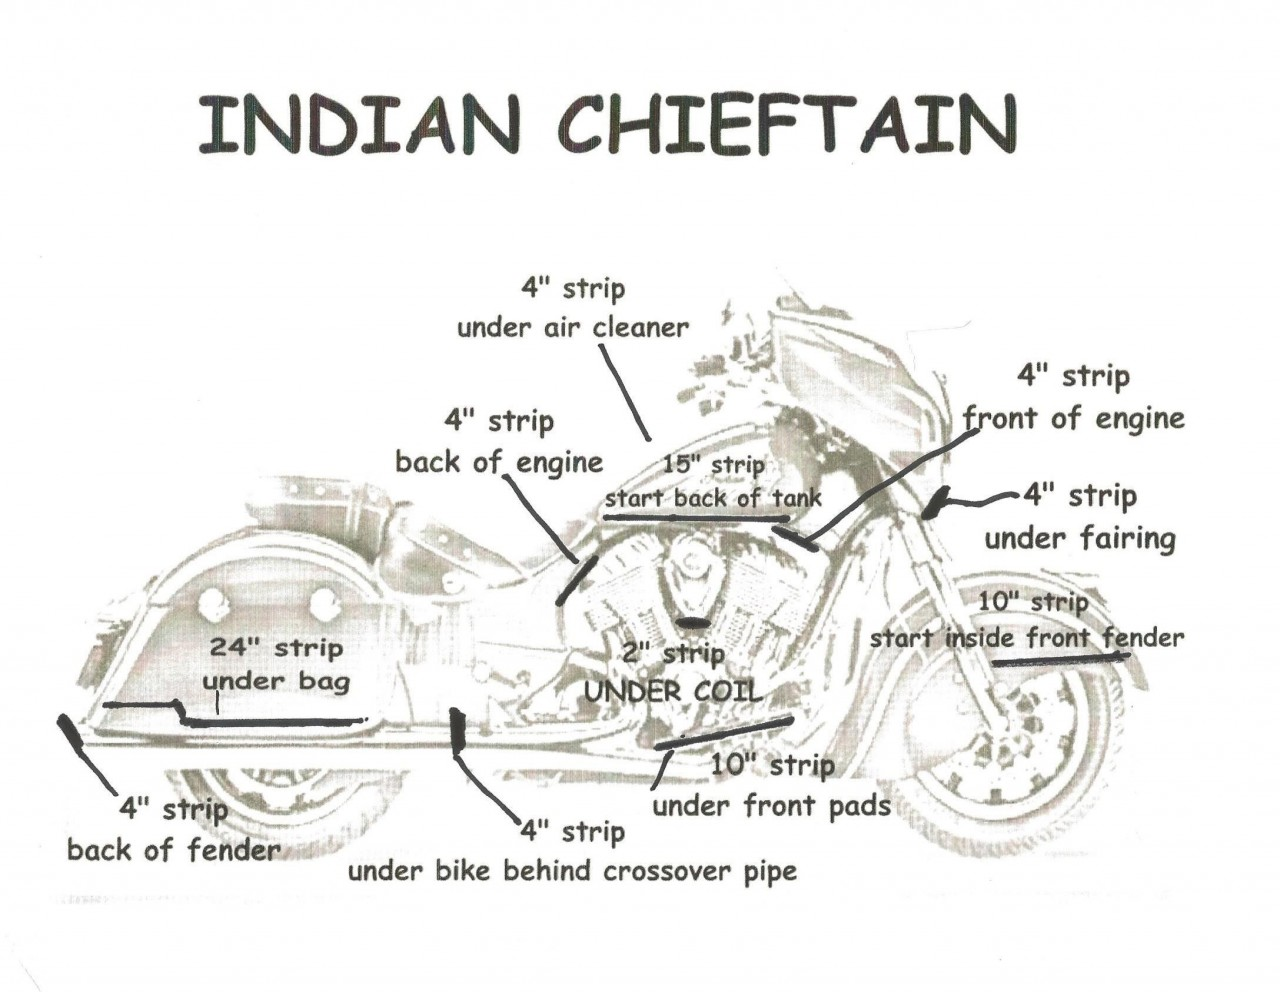 hight resolution of 2014 indian motorcycle wiring diagram wiring library 2014 indian chieftain wiring diagram 2014 indian motorcycle wiring diagram